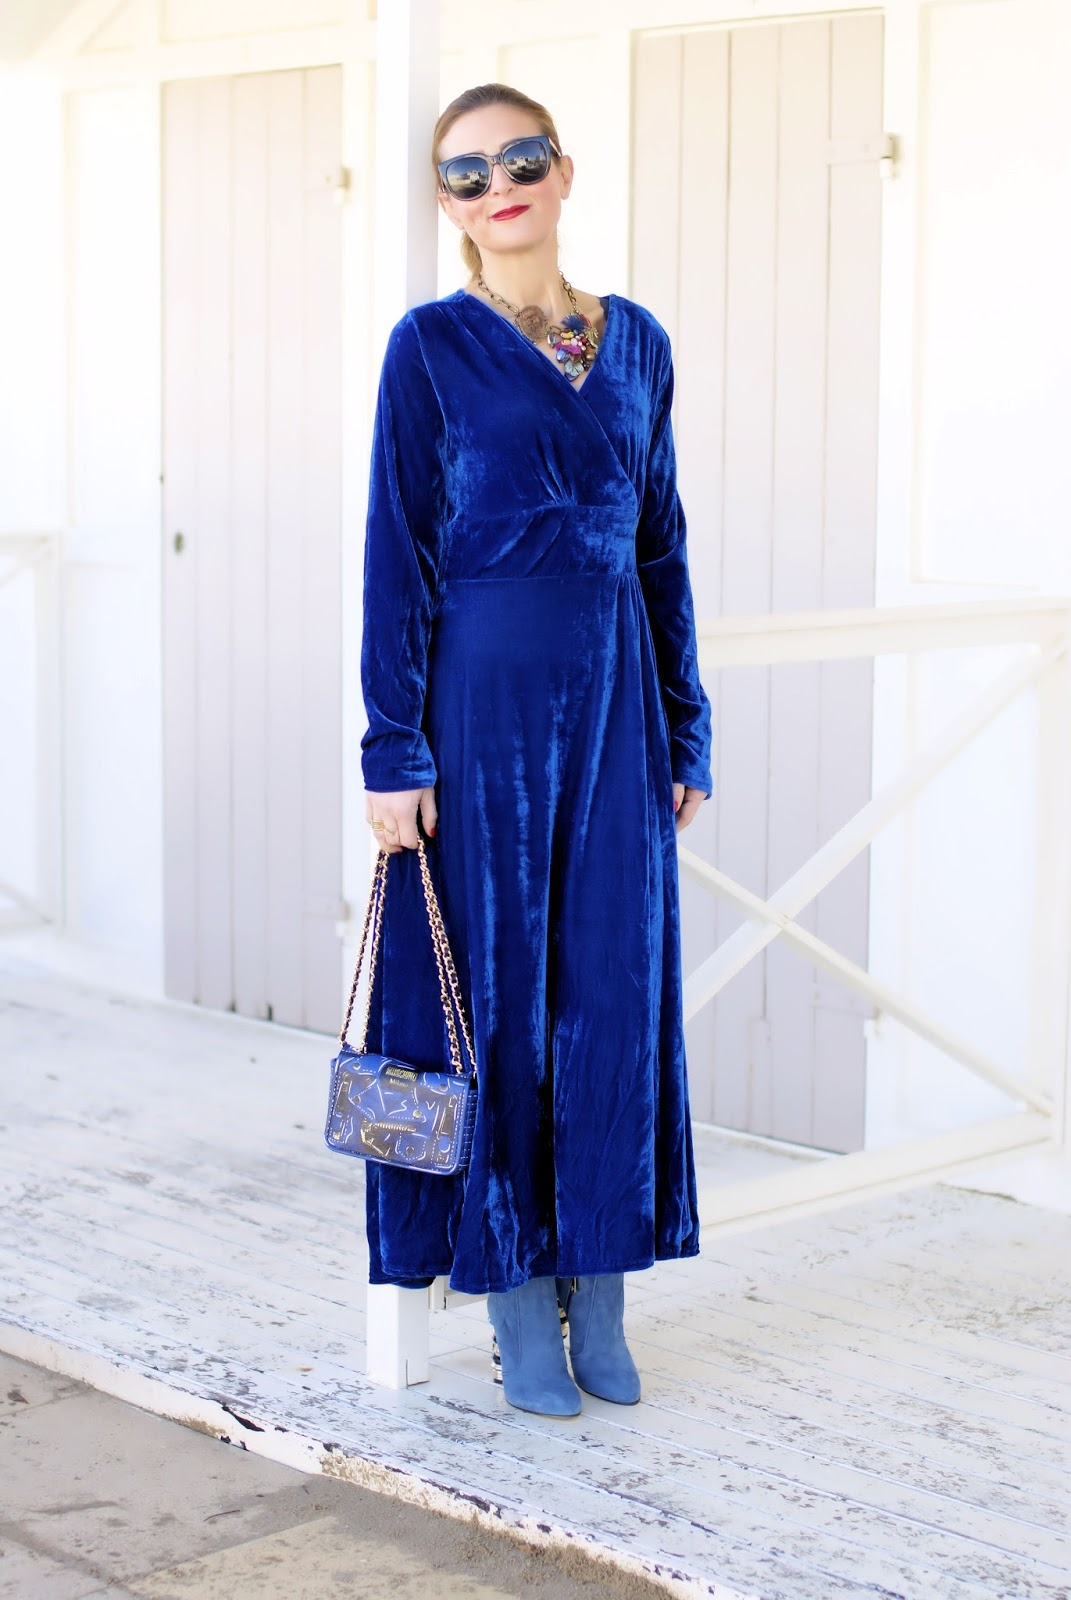 Rosegal blue maxi velvet dress on Fashion and Cookies fashion blog, fashion blogger style